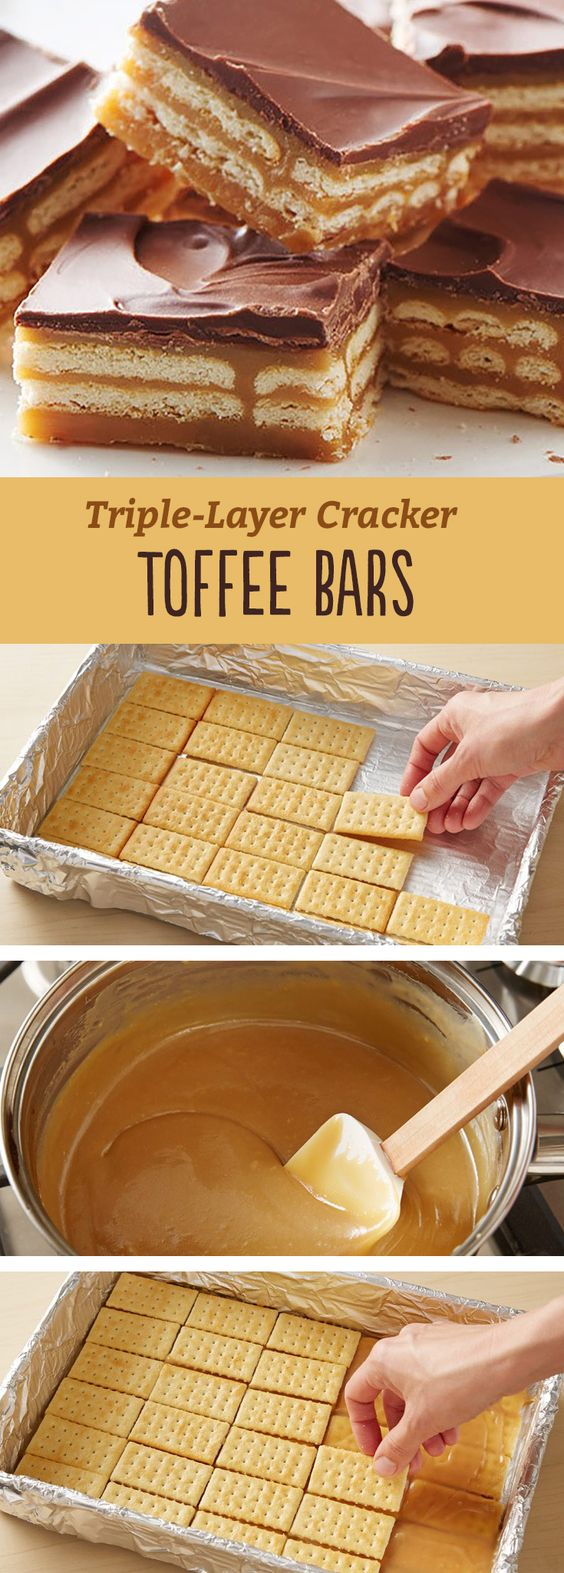 Triple-Layer Cracker Toffee Bars #Triple-Layer $Cracker #Toffee #Bars  #HEALTHYFOOD #EASYRECIPES #DINNER #LAUCH #DELICIOUS #EASY #HOLIDAYS #RECIPE #DESSERTS #SPECIALDIET #WORLDCUISINE #CAKE #APPETIZERS #HEALTHYRECIPES #DRINKS #COOKINGMETHOD #ITALIANRECIPES #MEAT #VEGANRECIPES #COOKIES #PASTA #FRUIT #SALAD #SOUPAPPETIZERS #NONALCOHOLICDRINKS #MEALPLANNING #VEGETABLES #SOUP #PASTRY #CHOCOLATE #DAIRY #ALCOHOLICDRINKS #BULGURSALAD #BAKING #SNACKS #BEEFRECIPES #MEATAPPETIZERS #MEXICANRECIPES #BREAD #ASIANRECIPES #SEAFOODAPPETIZERS #MUFFINS #BREAKFASTANDBRUNCH #CONDIMENTS #CUPCAKES #CHEESE #CHICKENRECIPES #PIE #COFFEE #NOBAKEDESSERTS #HEALTHYSNACKS #SEAFOOD #GRAIN #LUNCHESDINNERS #MEXICAN #QUICKBREAD #LIQUOR